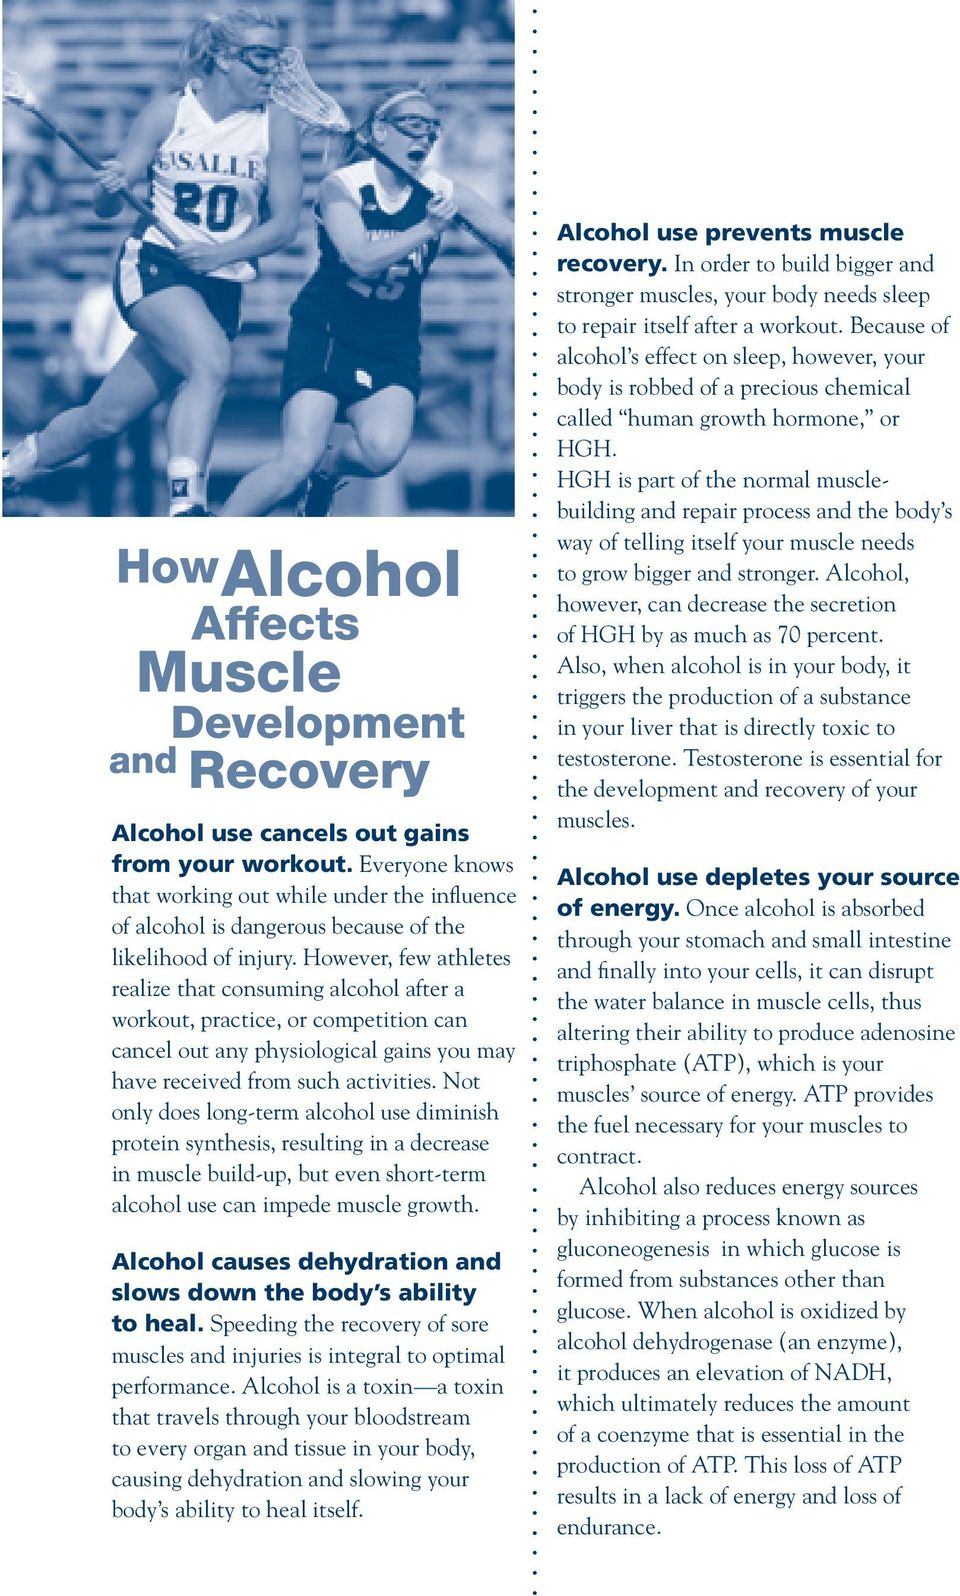 Not only does long-term alcohol use diminish protein synthesis, resulting in a decrease in muscle build-up, but even short-term alcohol use can impede muscle growth.